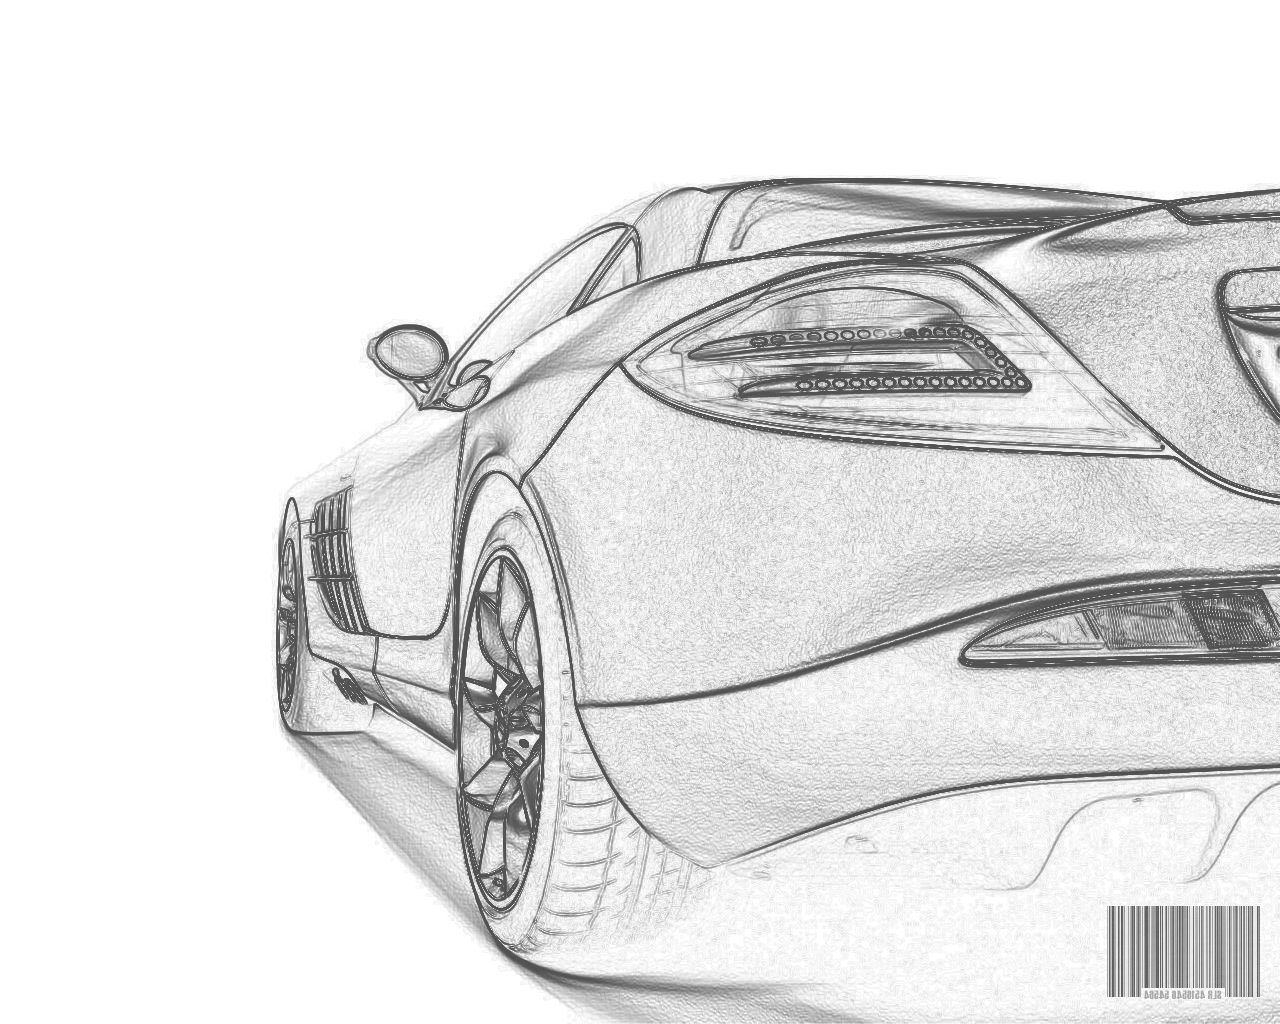 World Future Dream Car Car Drawing Simple Car Drawing Car Drawing Pencil Car Drawings